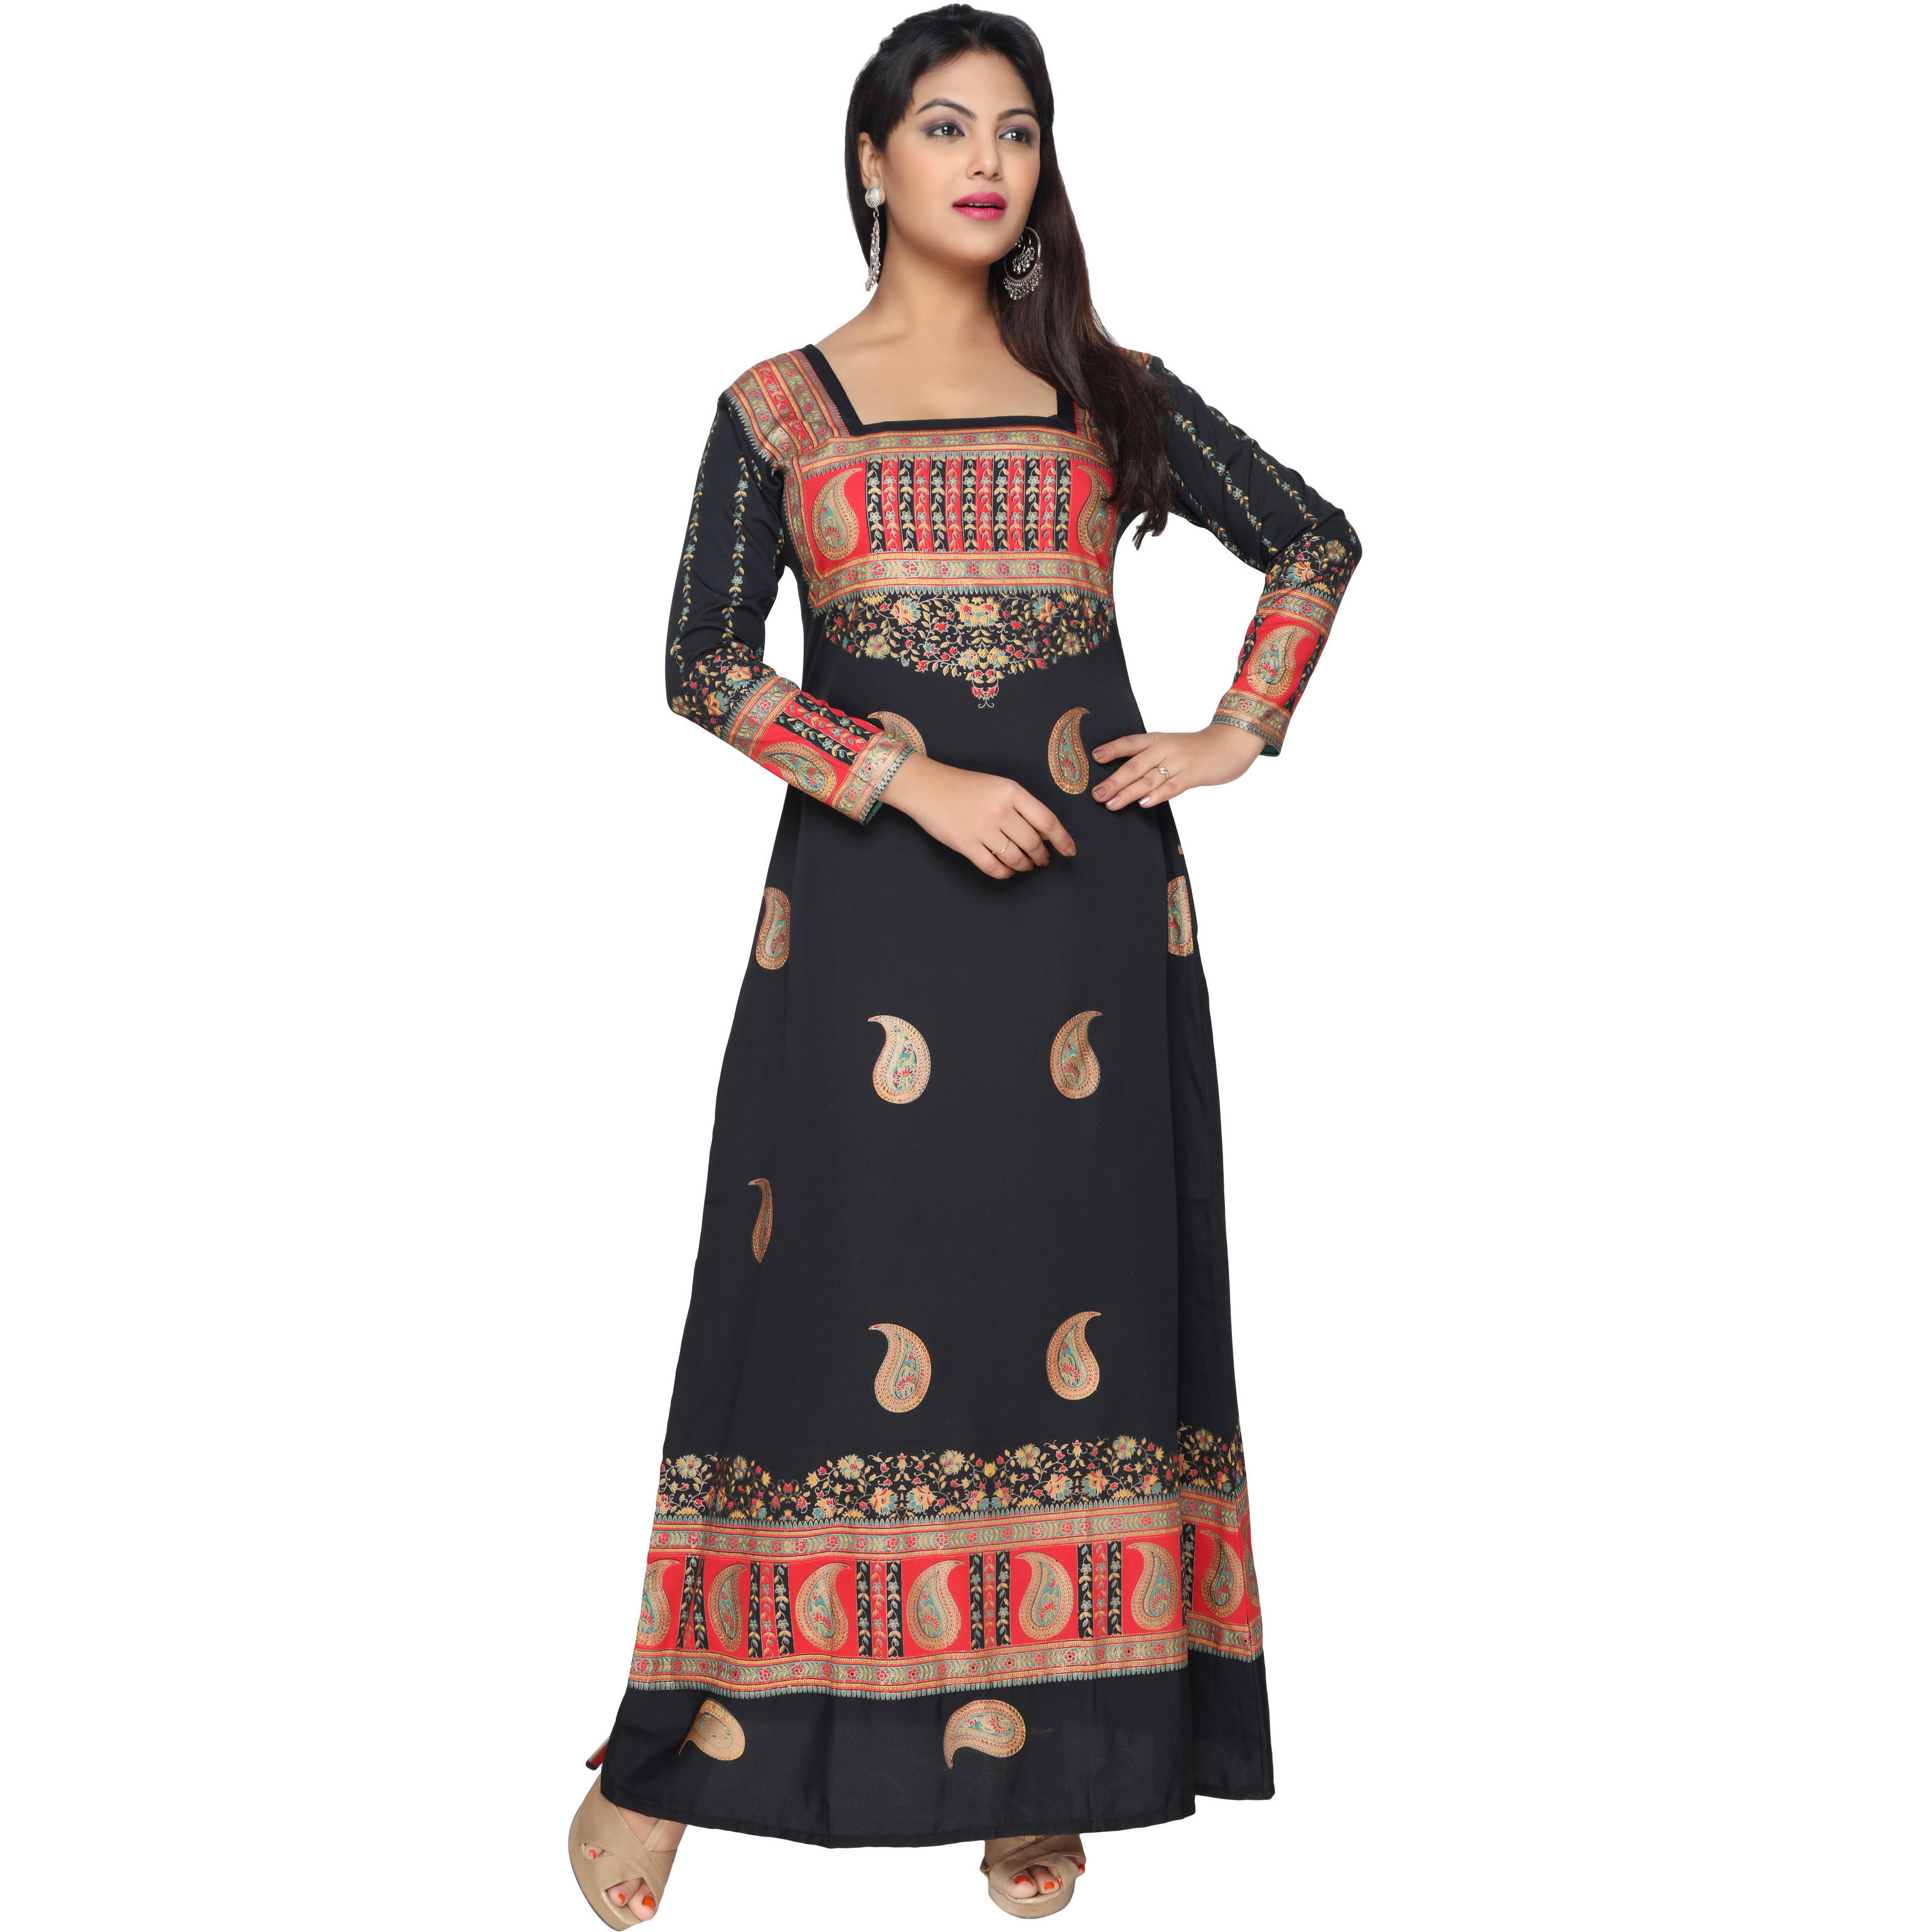 TrendyFashionMall Gold Print Kaftans Maxi Dresses with design in Front and Back (Color:TFMKFT01011-BLACK, Size:44 - X-LARGE)